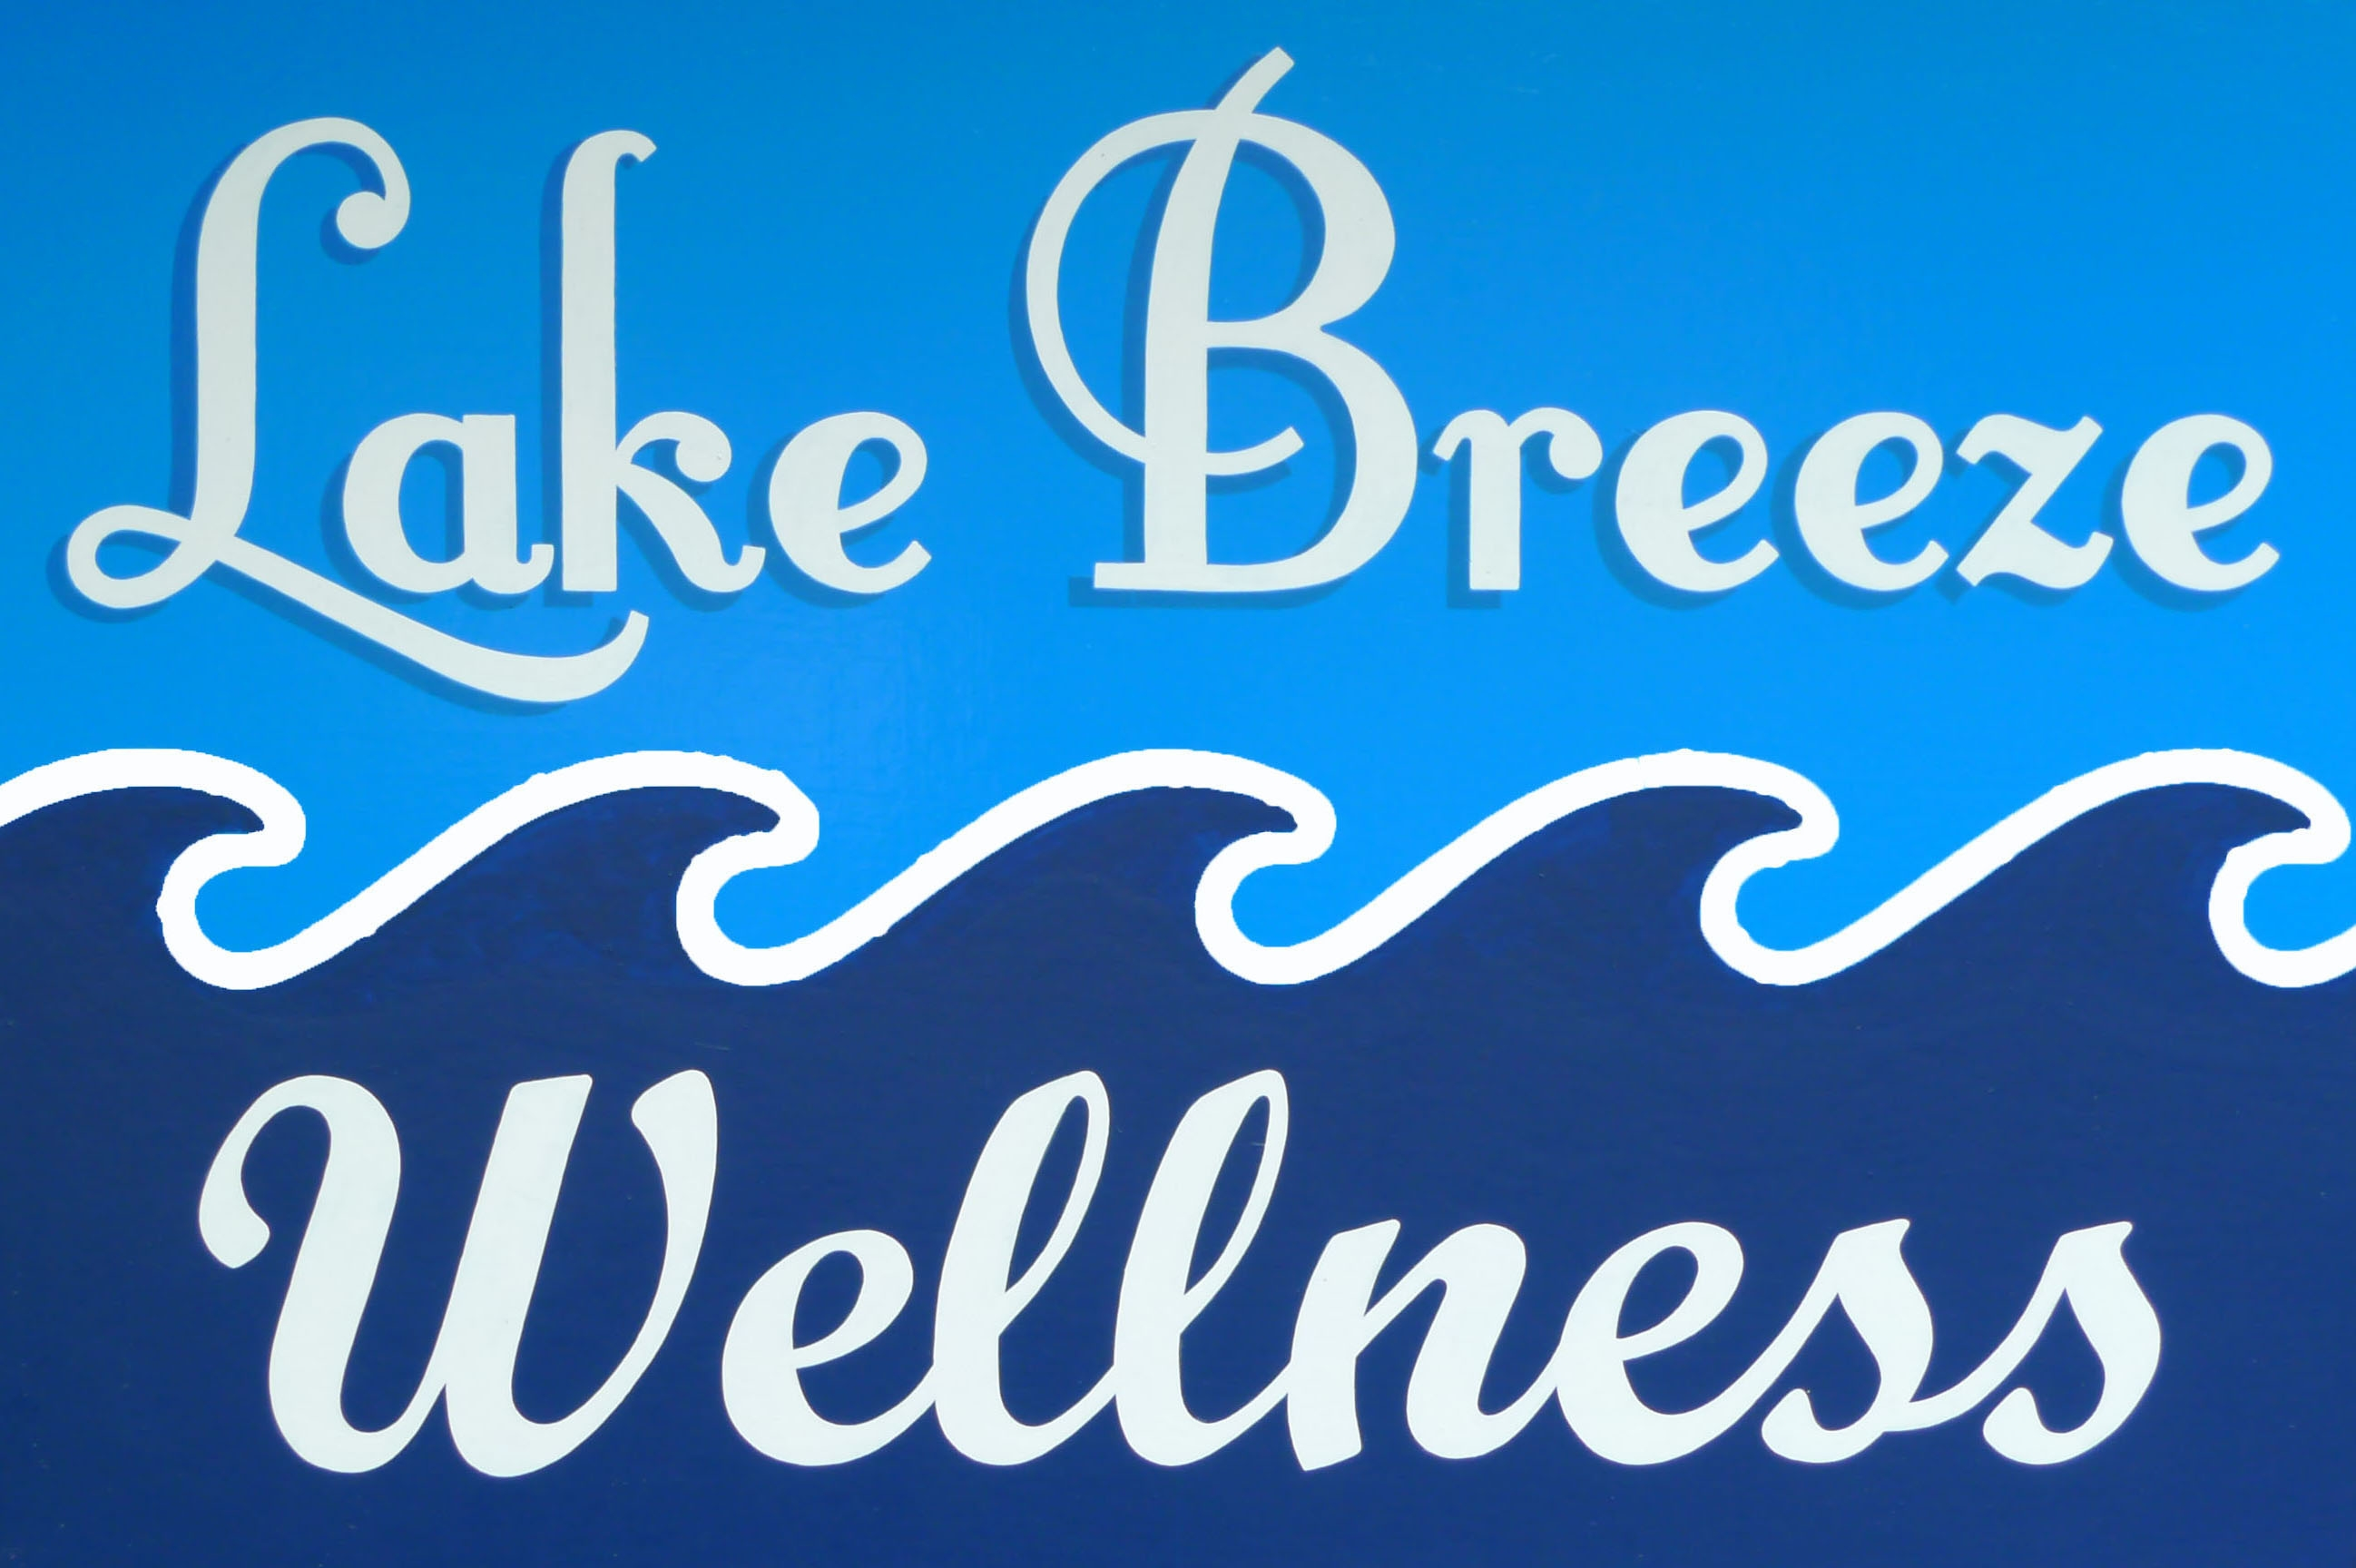 YOGA NOOK Lake Breeze Wellness logo